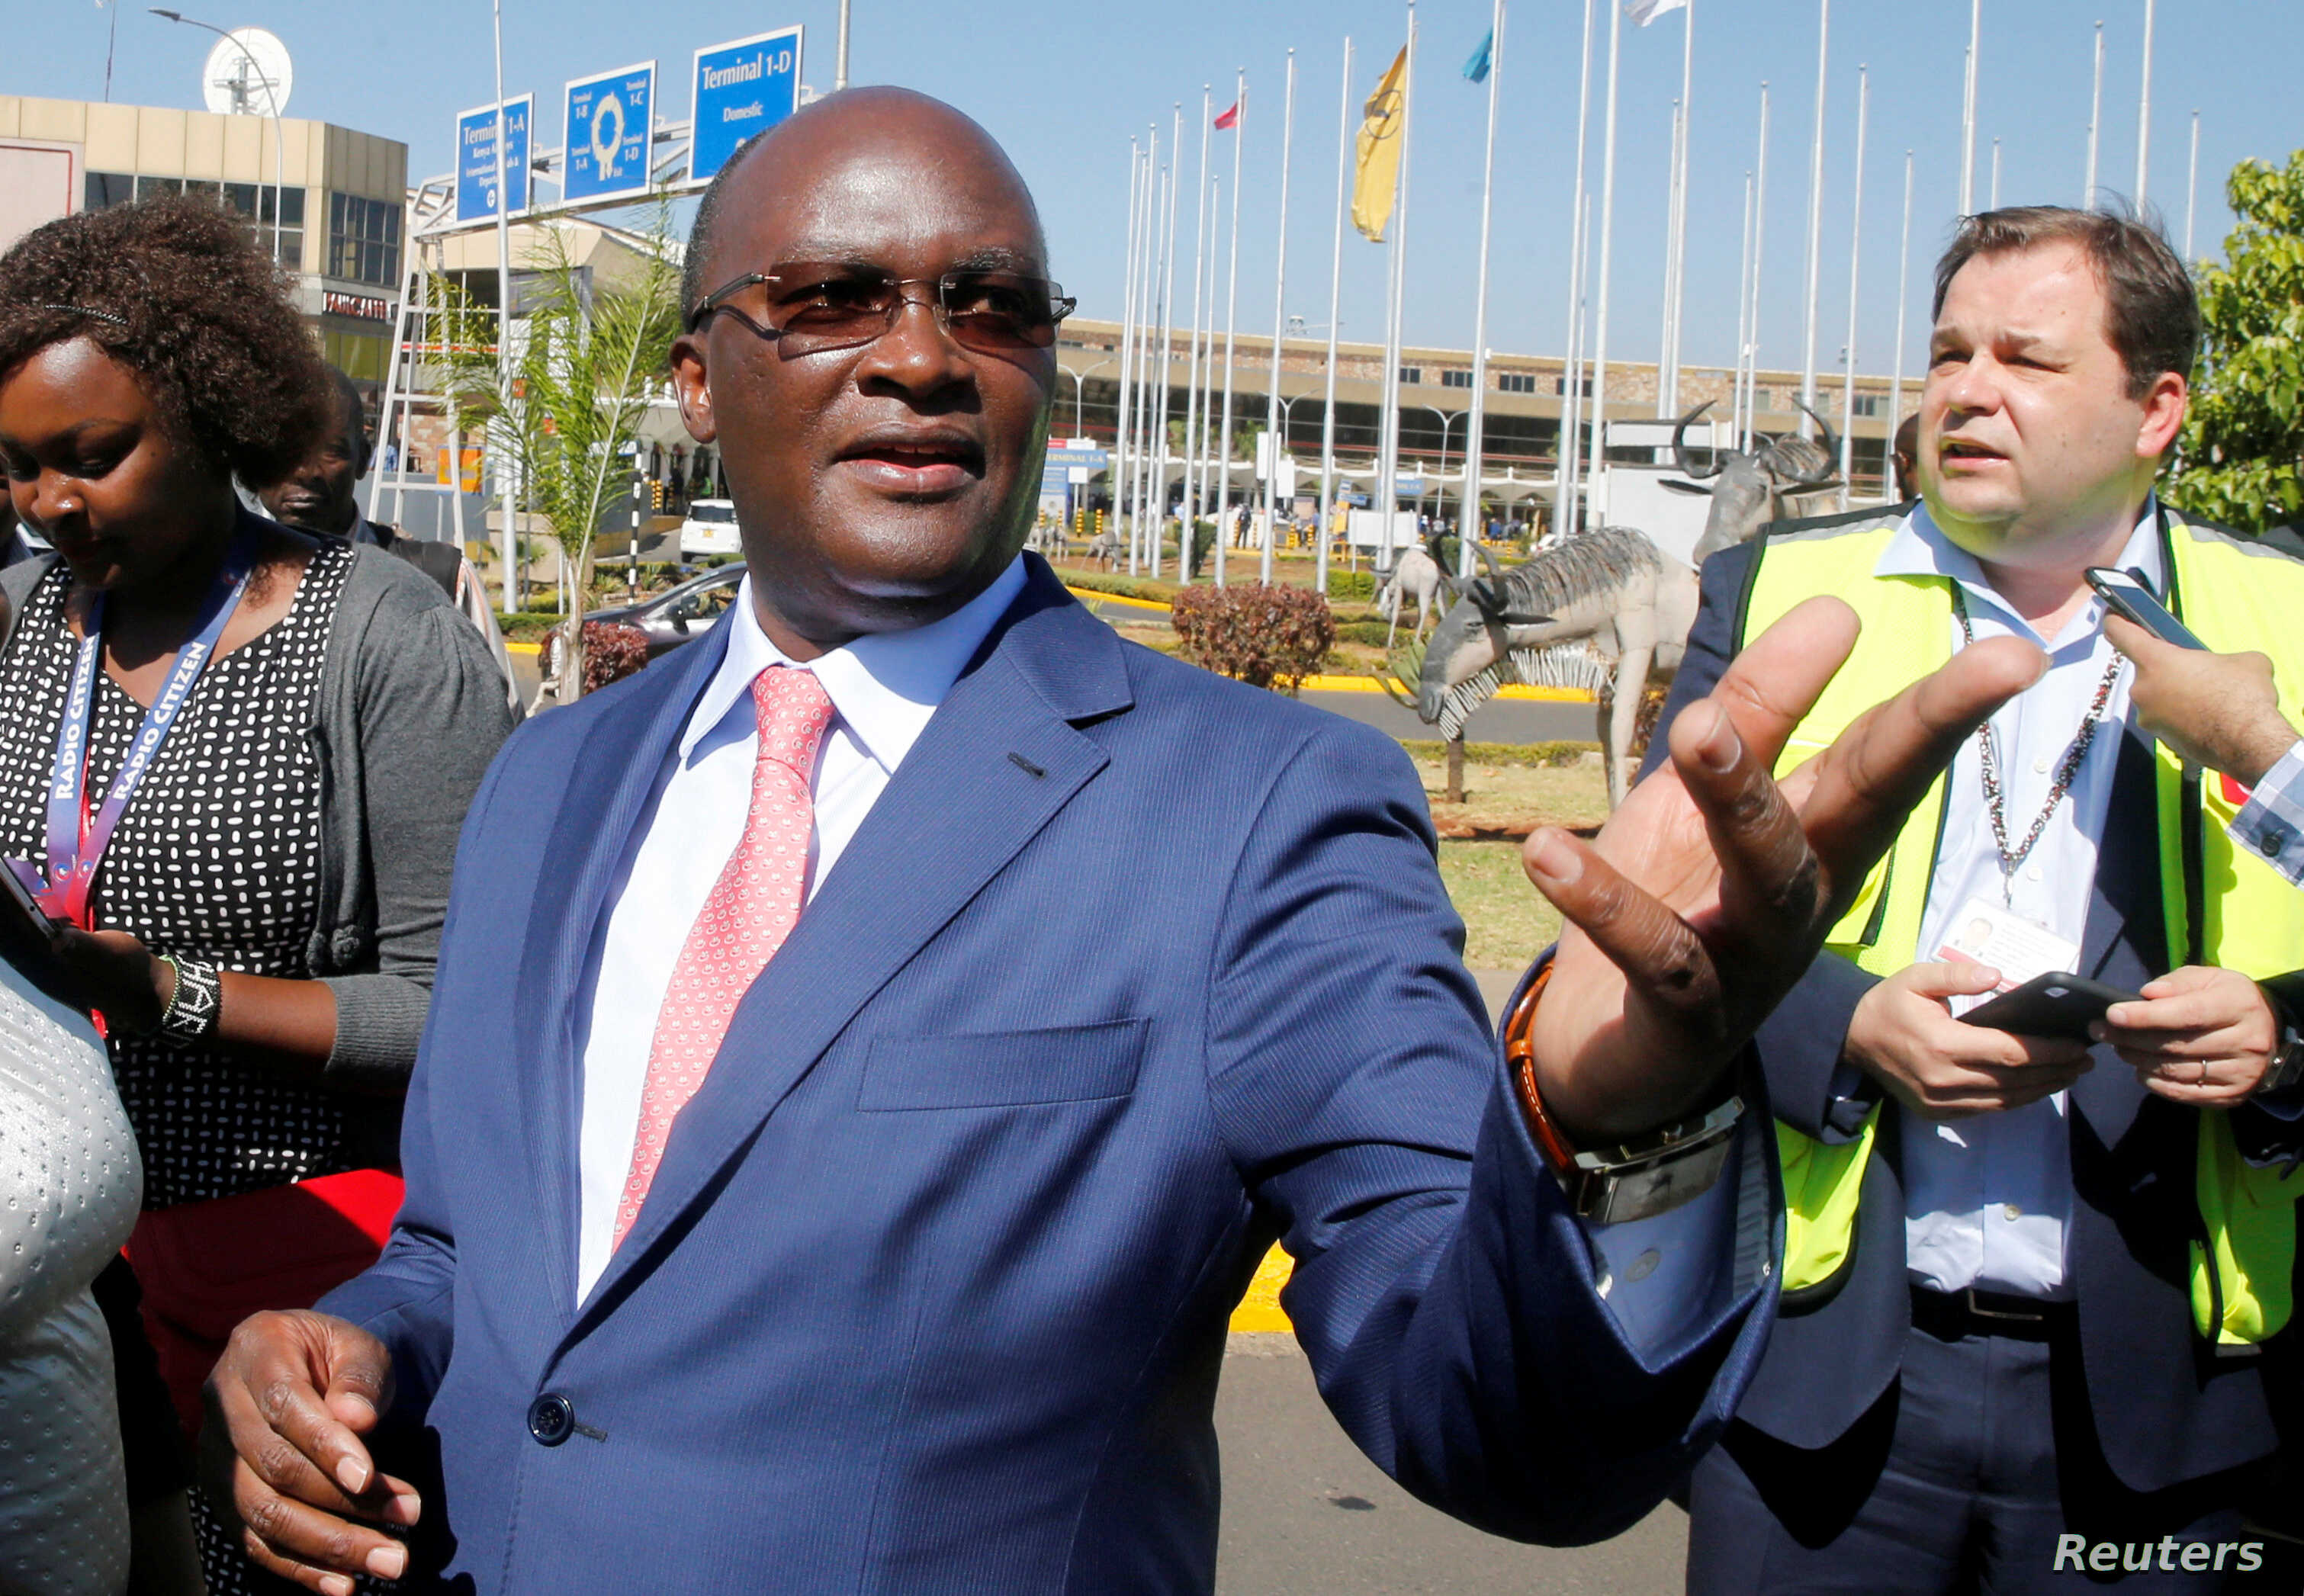 Kenya's Transport Cabinet Secretary James Macharia is seen at the Jomo Kenyatta International Airport during a labor dispute that grounded flights, on the outskirts of Nairobi, Kenya, March 6, 2019.